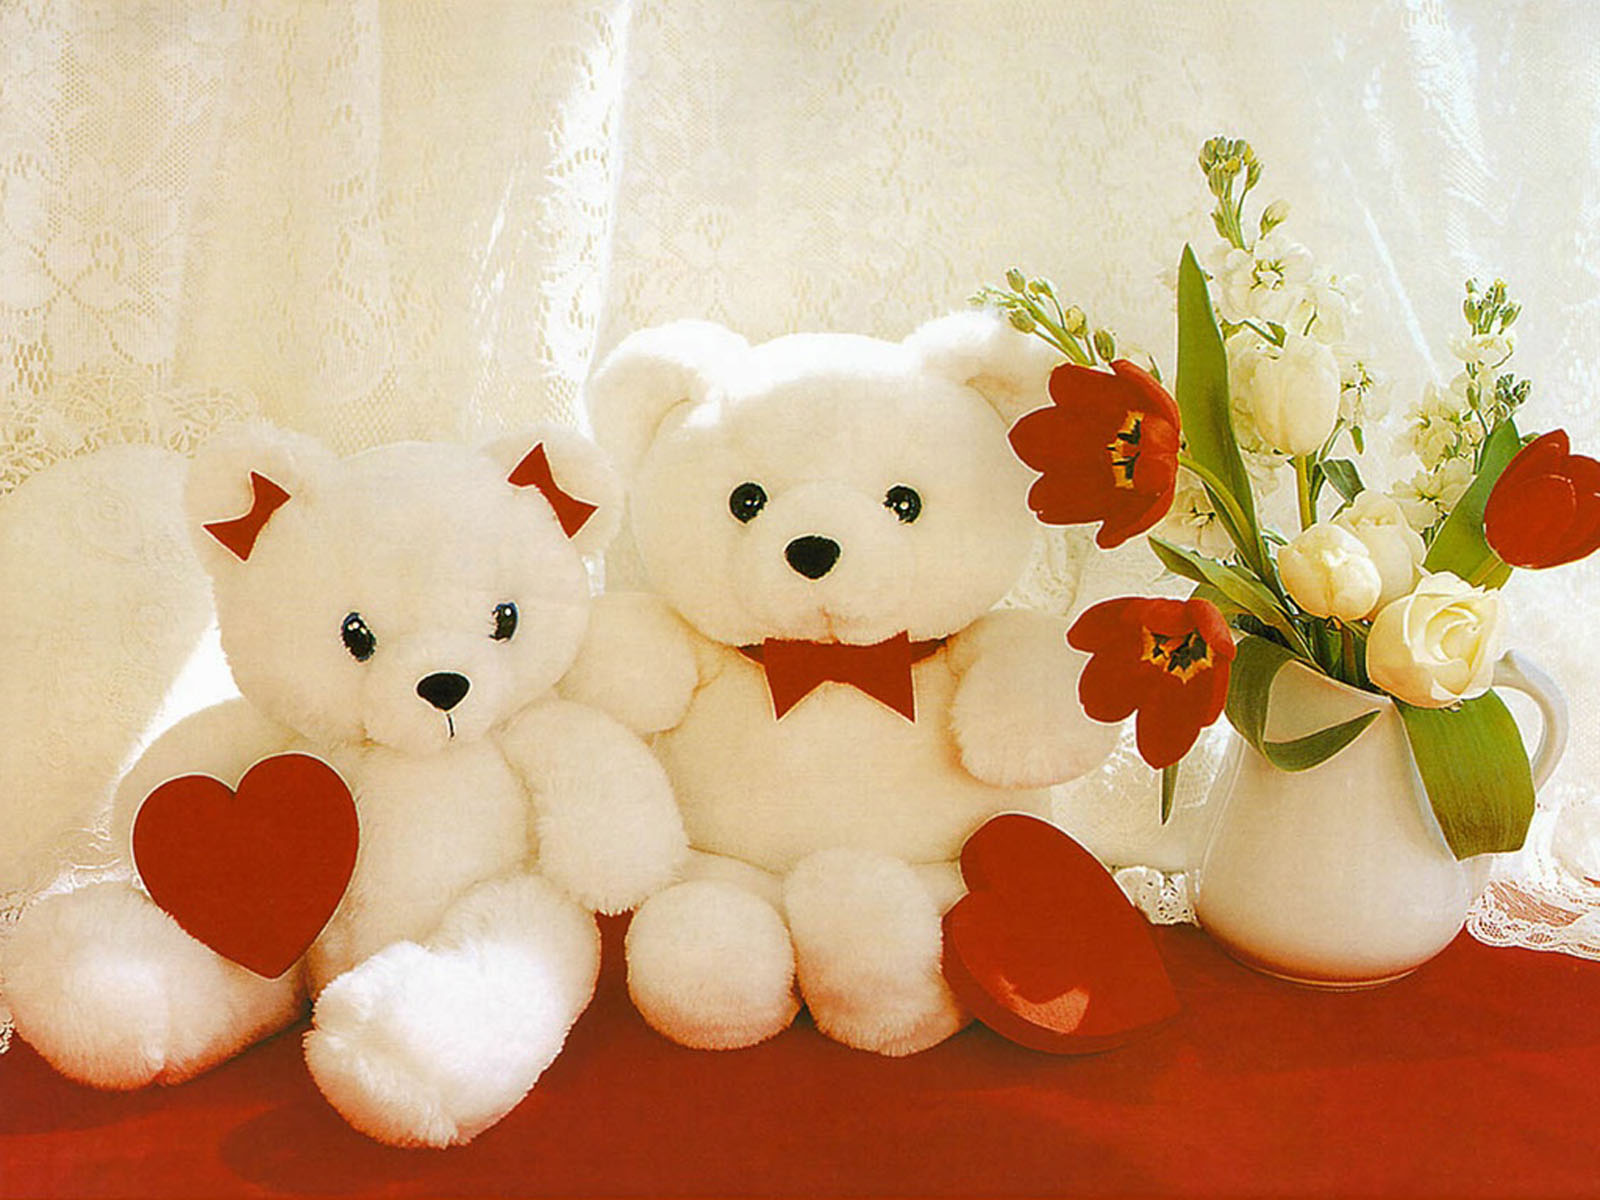 Love Wallpaper With Taddy : wallpapers: Love Teddy Bear Wallpapers